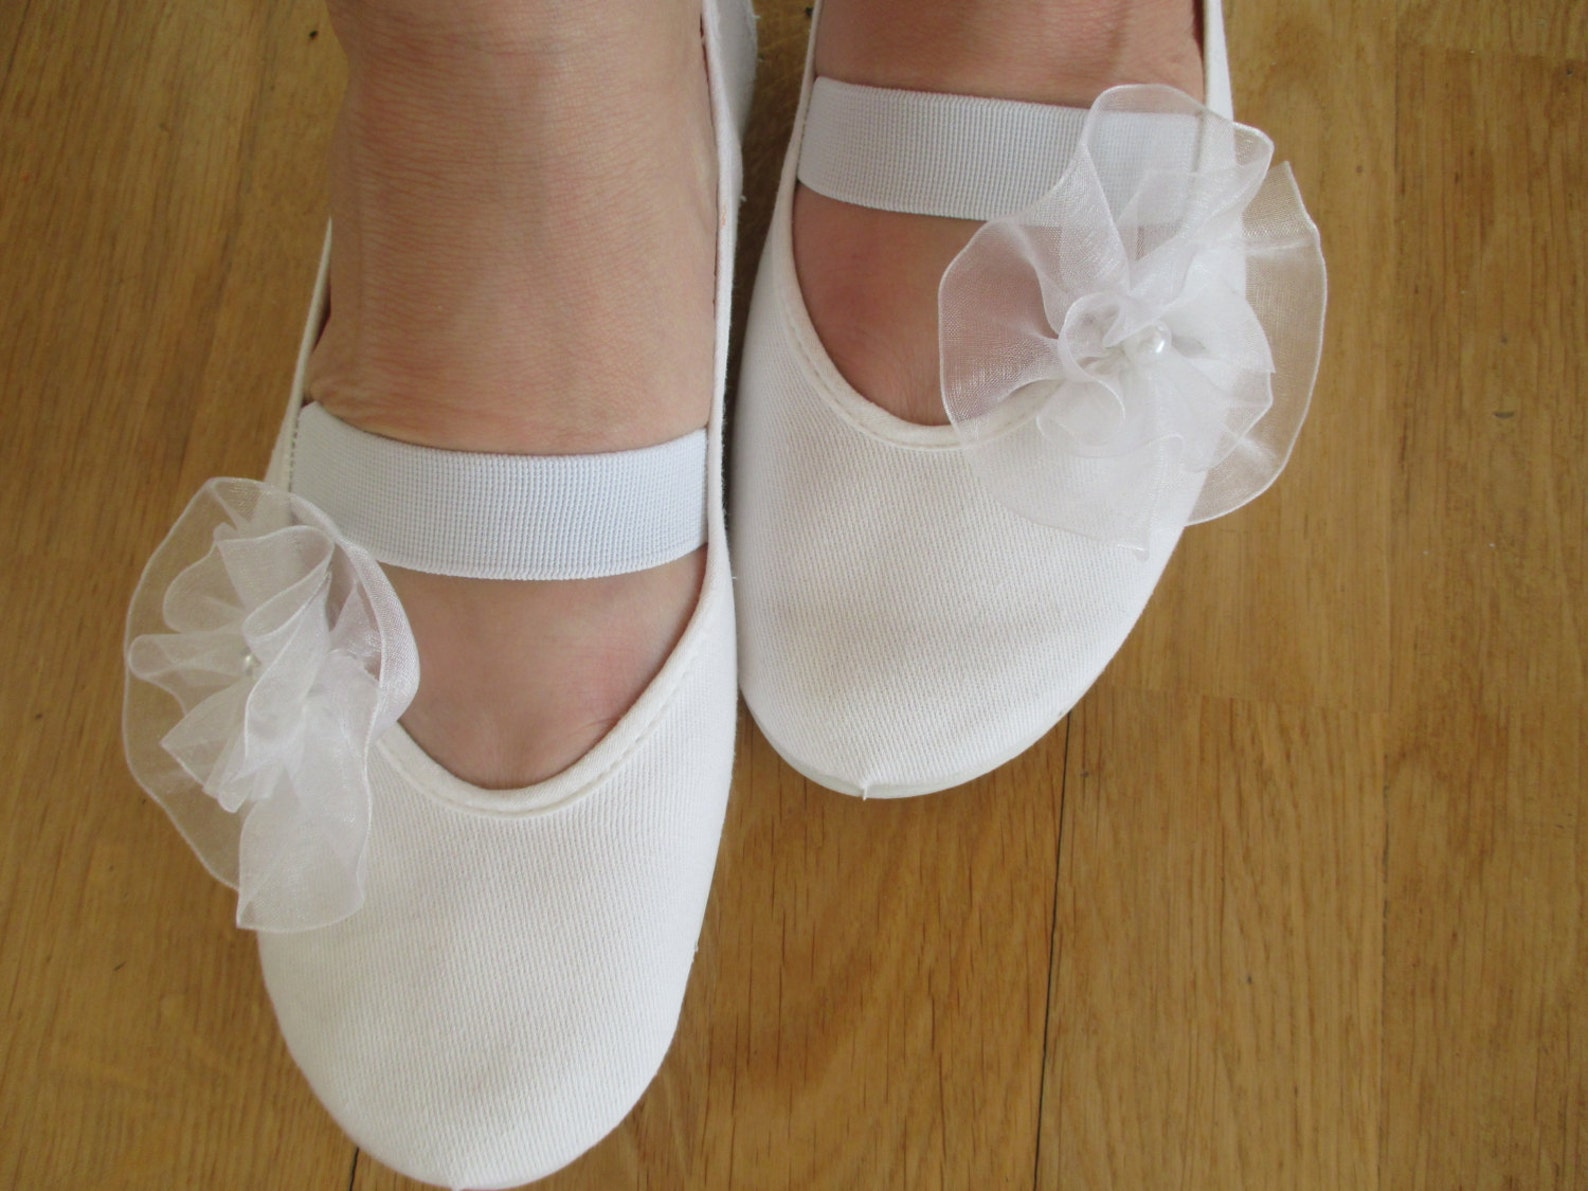 wedding shoes woman shoes girls shoes mary jane shoes white cotton shoes dance shoes wedding ballet flats, bridal shoes,summer d